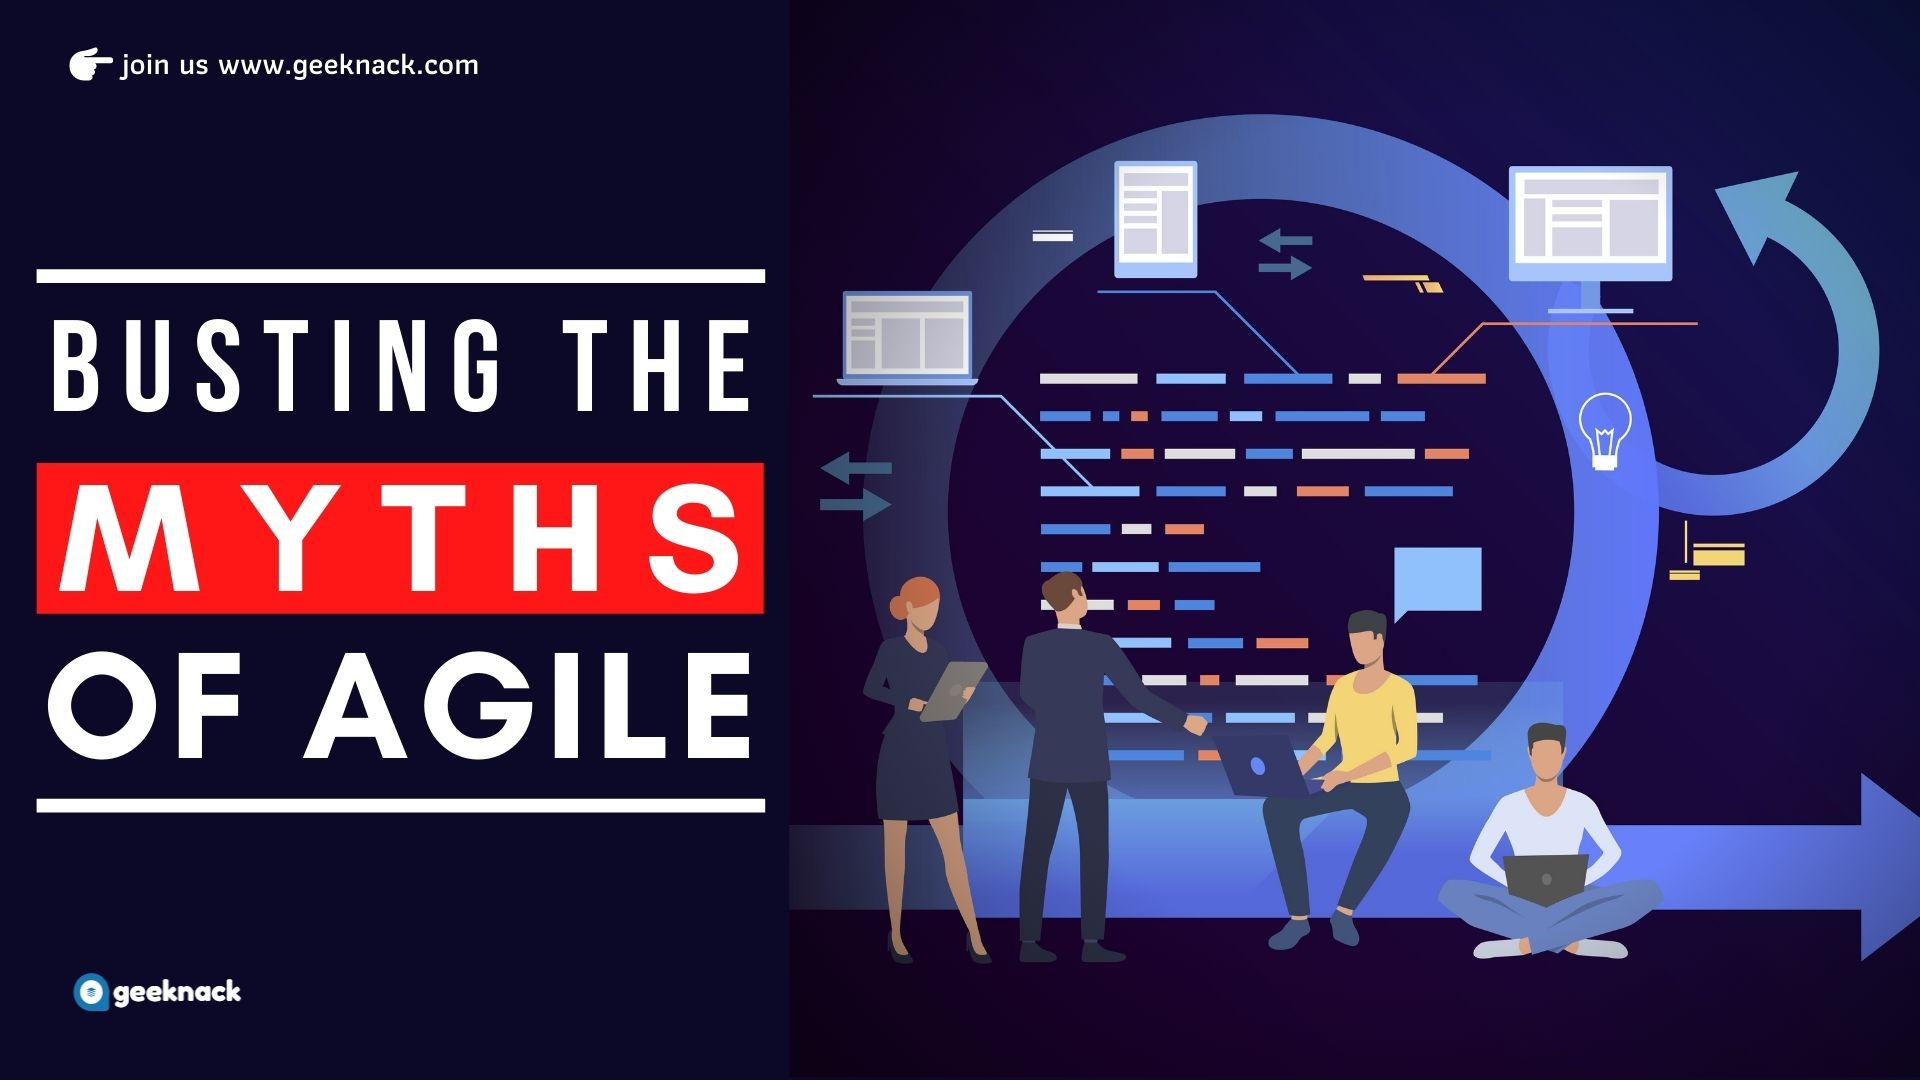 Busting The Myths of Agile cover